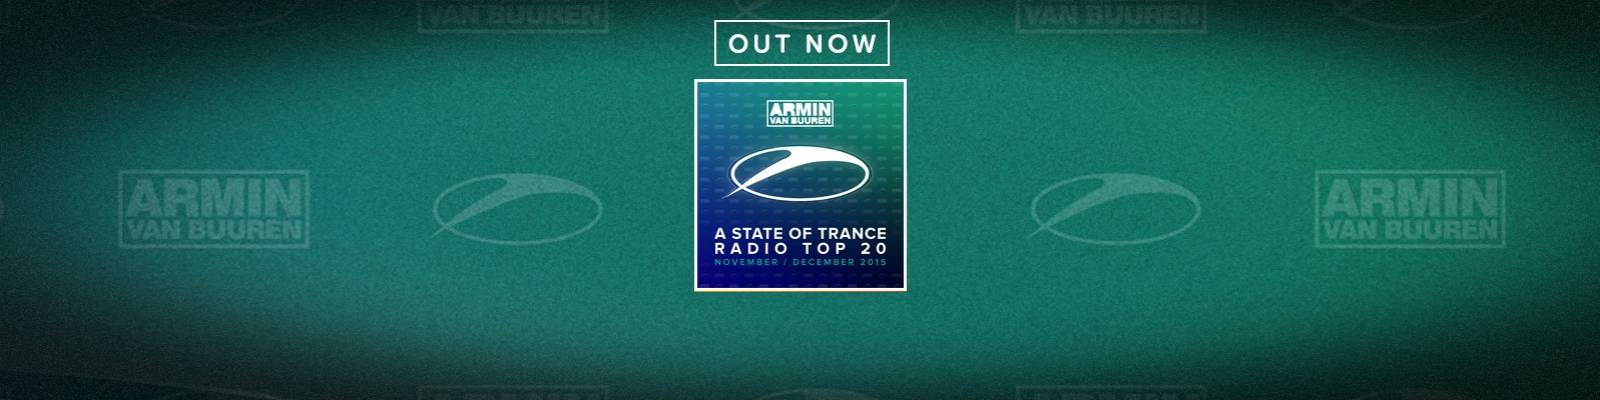 OUT NOW: A State Of Trance Radio Top 20 November/December 2015